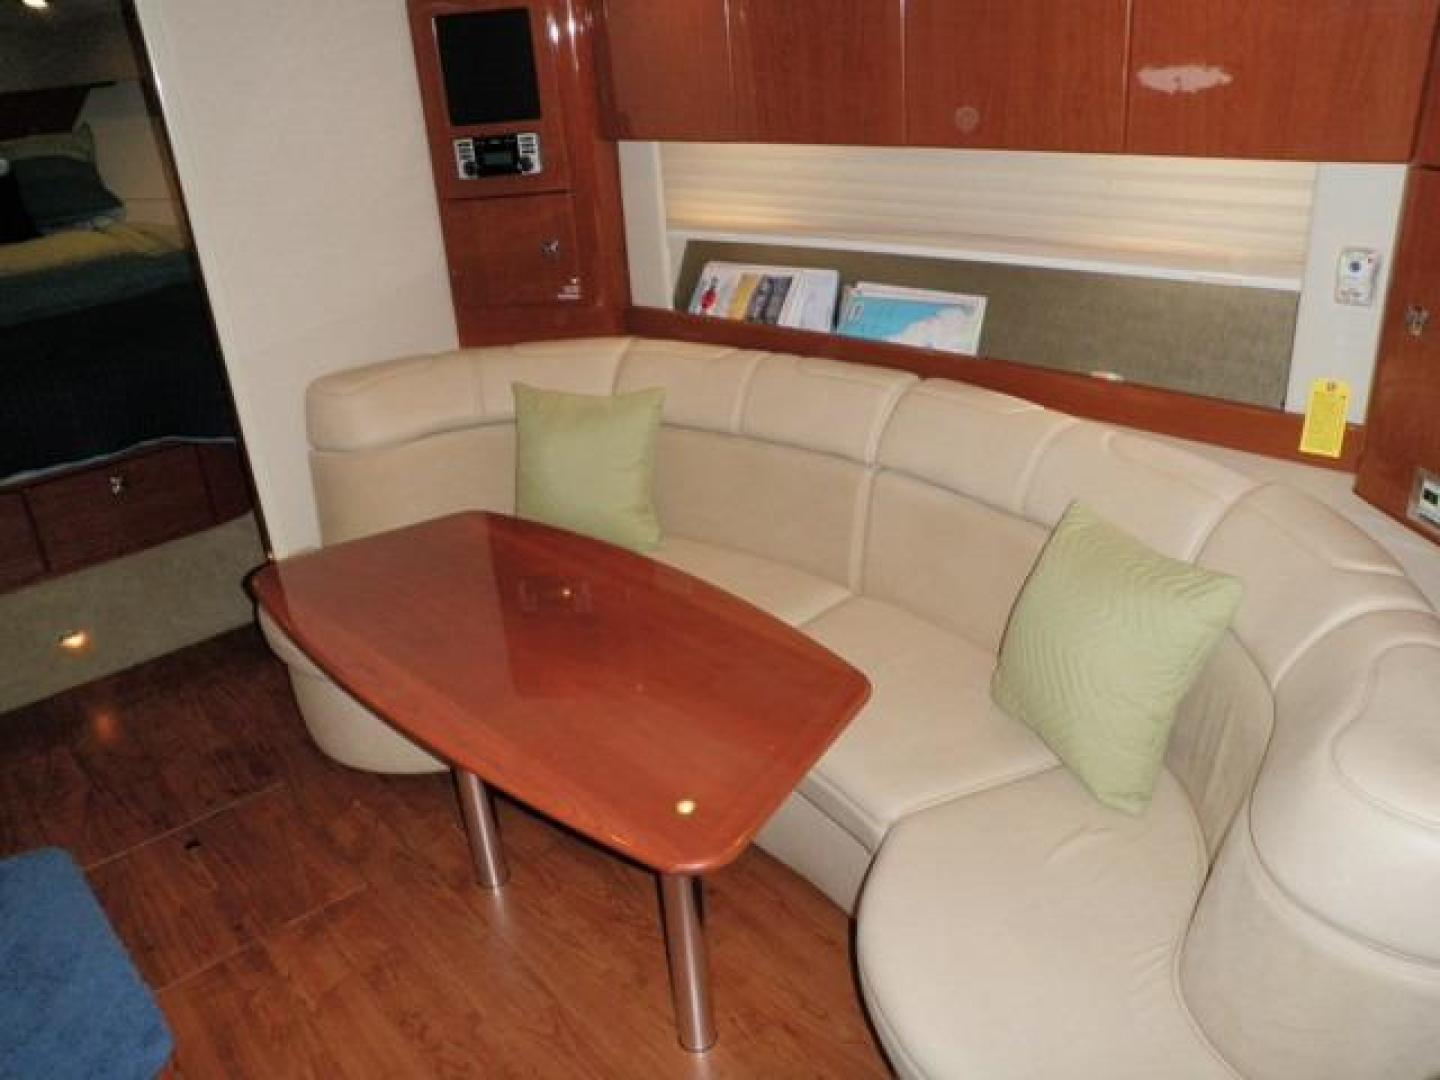 Settee to starboard